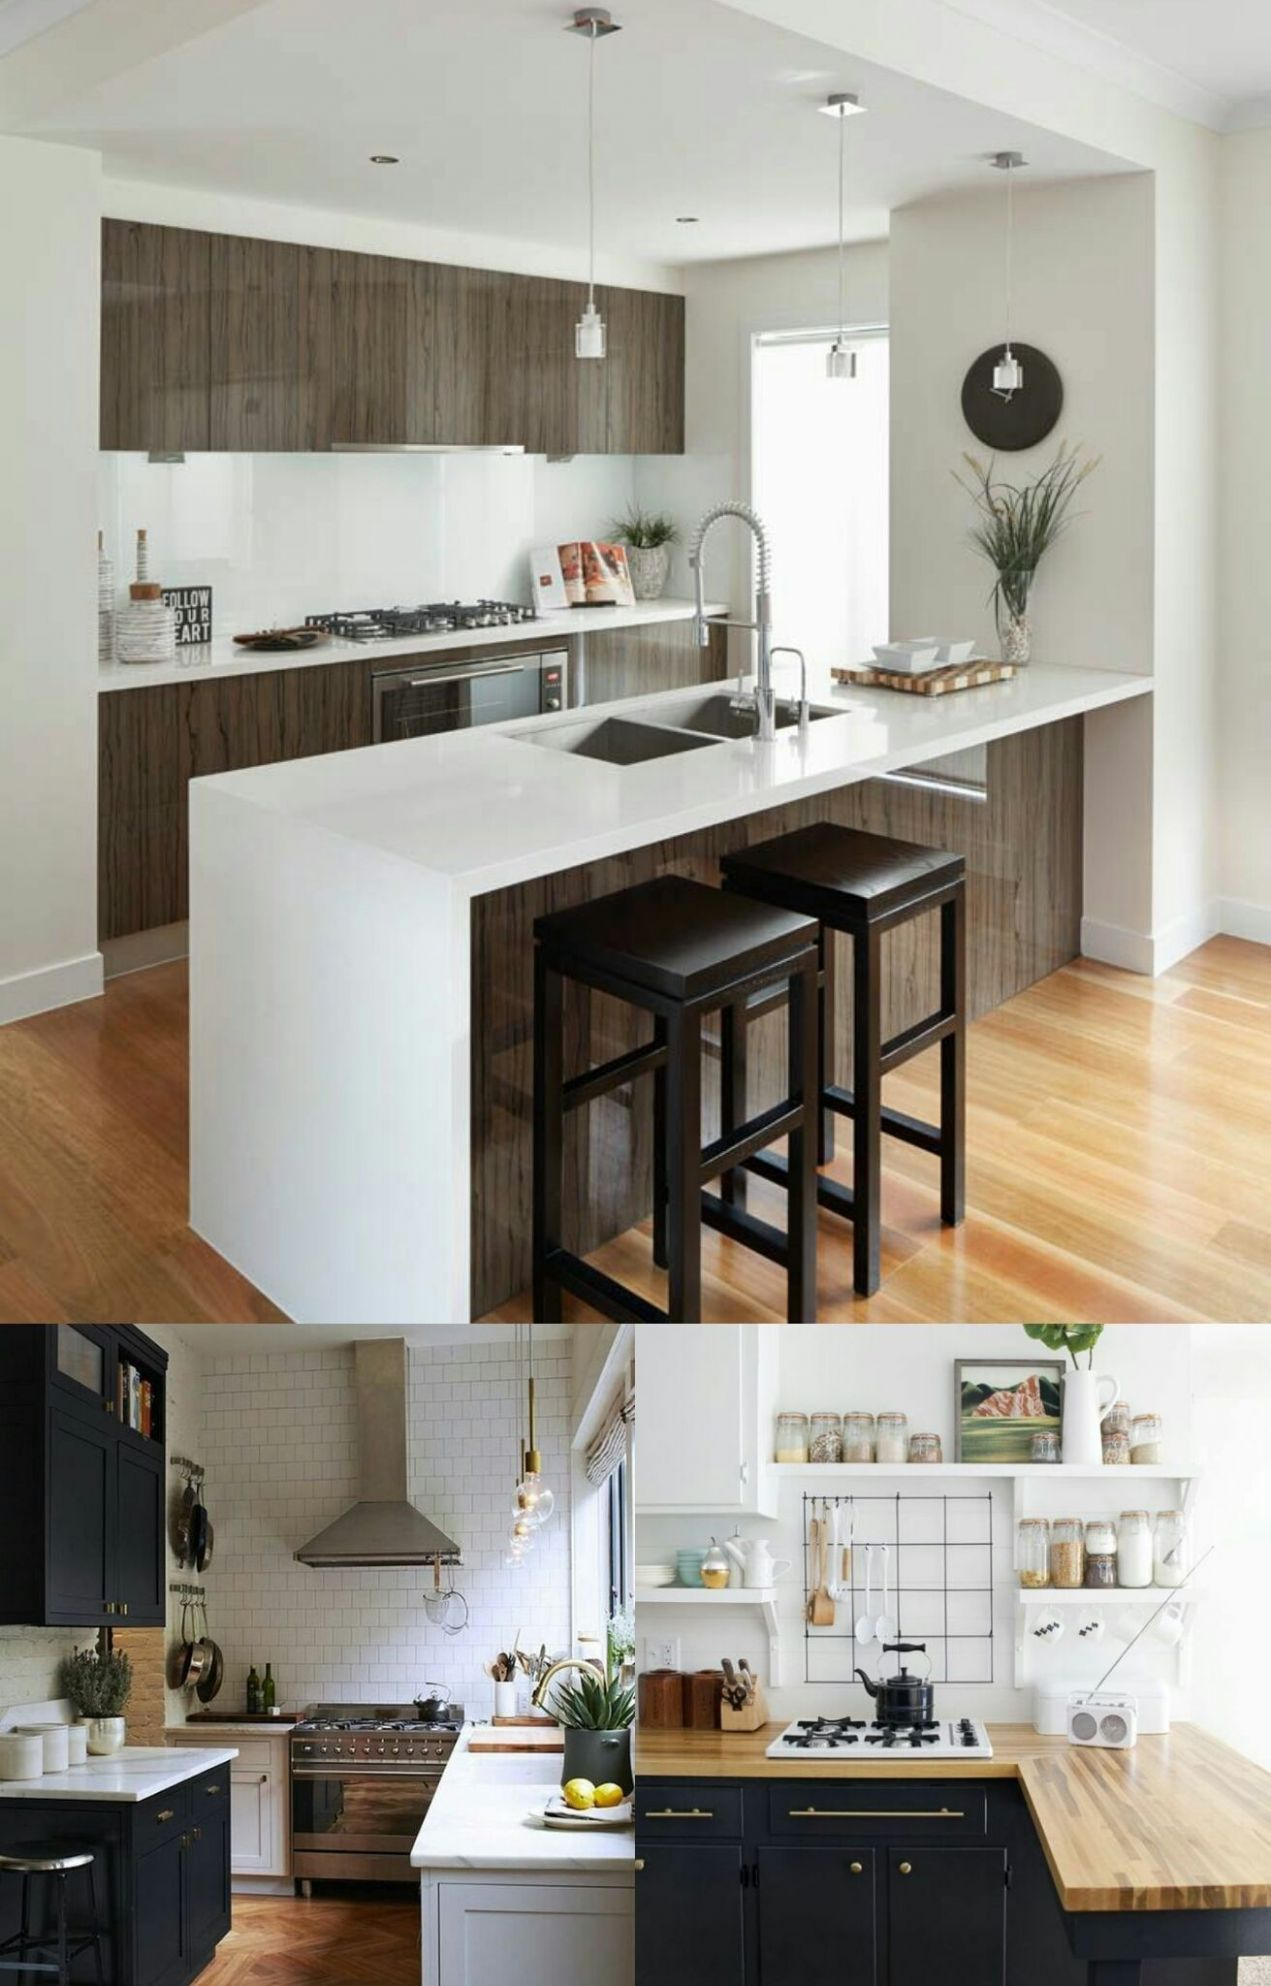 1111+11 Small Kitchen Ideas Collection of beautiful That You Can Use ..